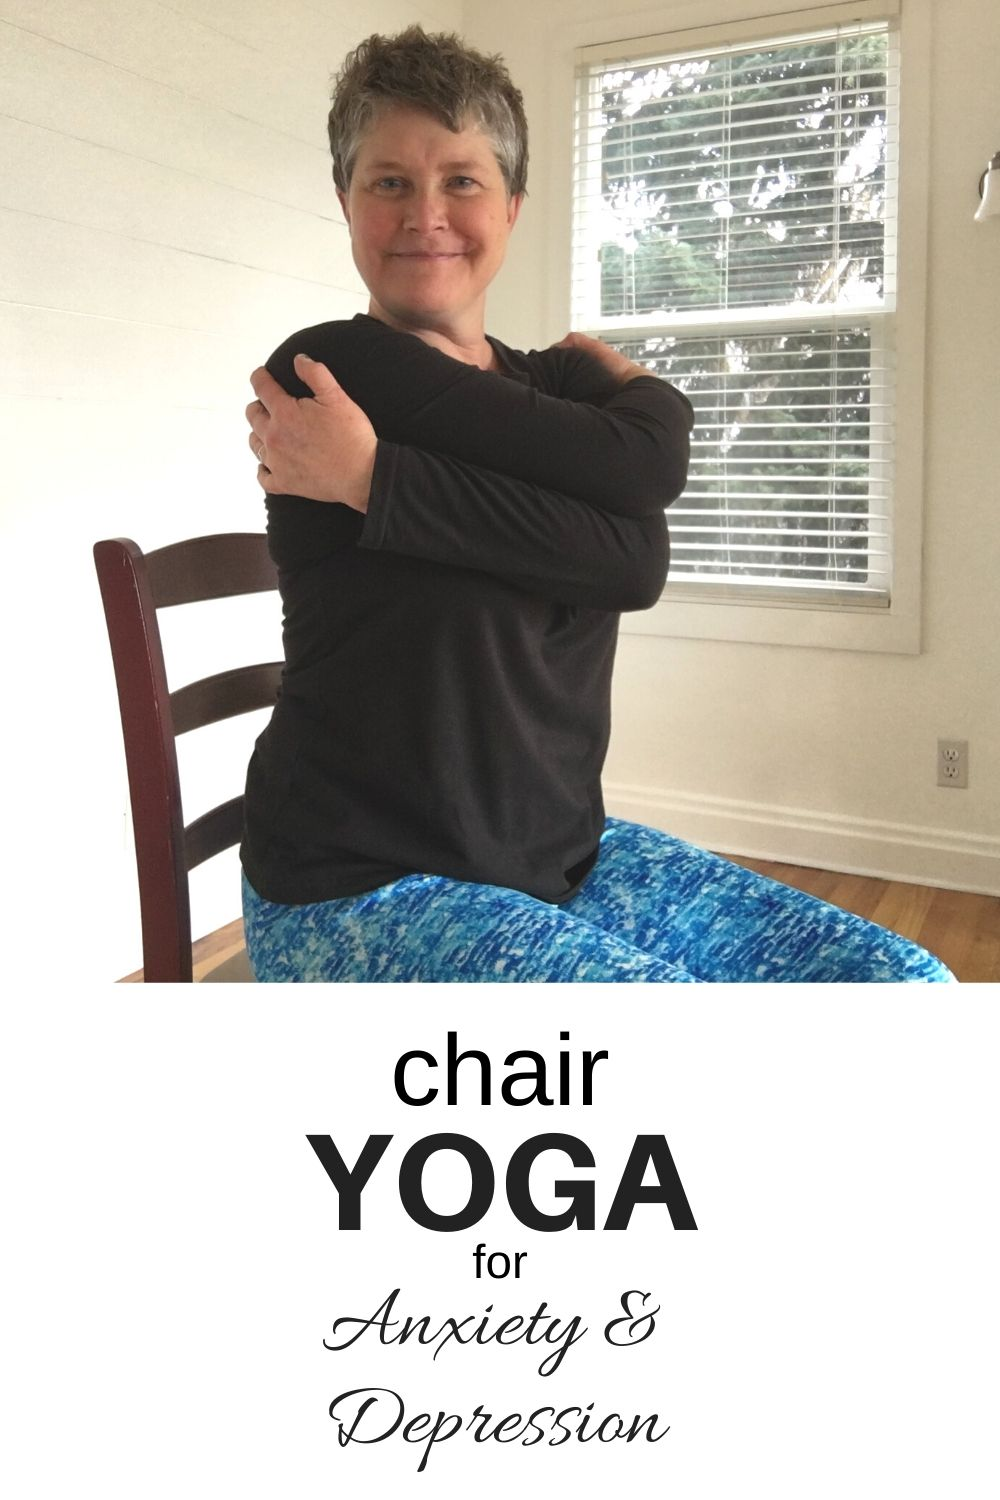 Chair Yoga for Anxiety & Depression